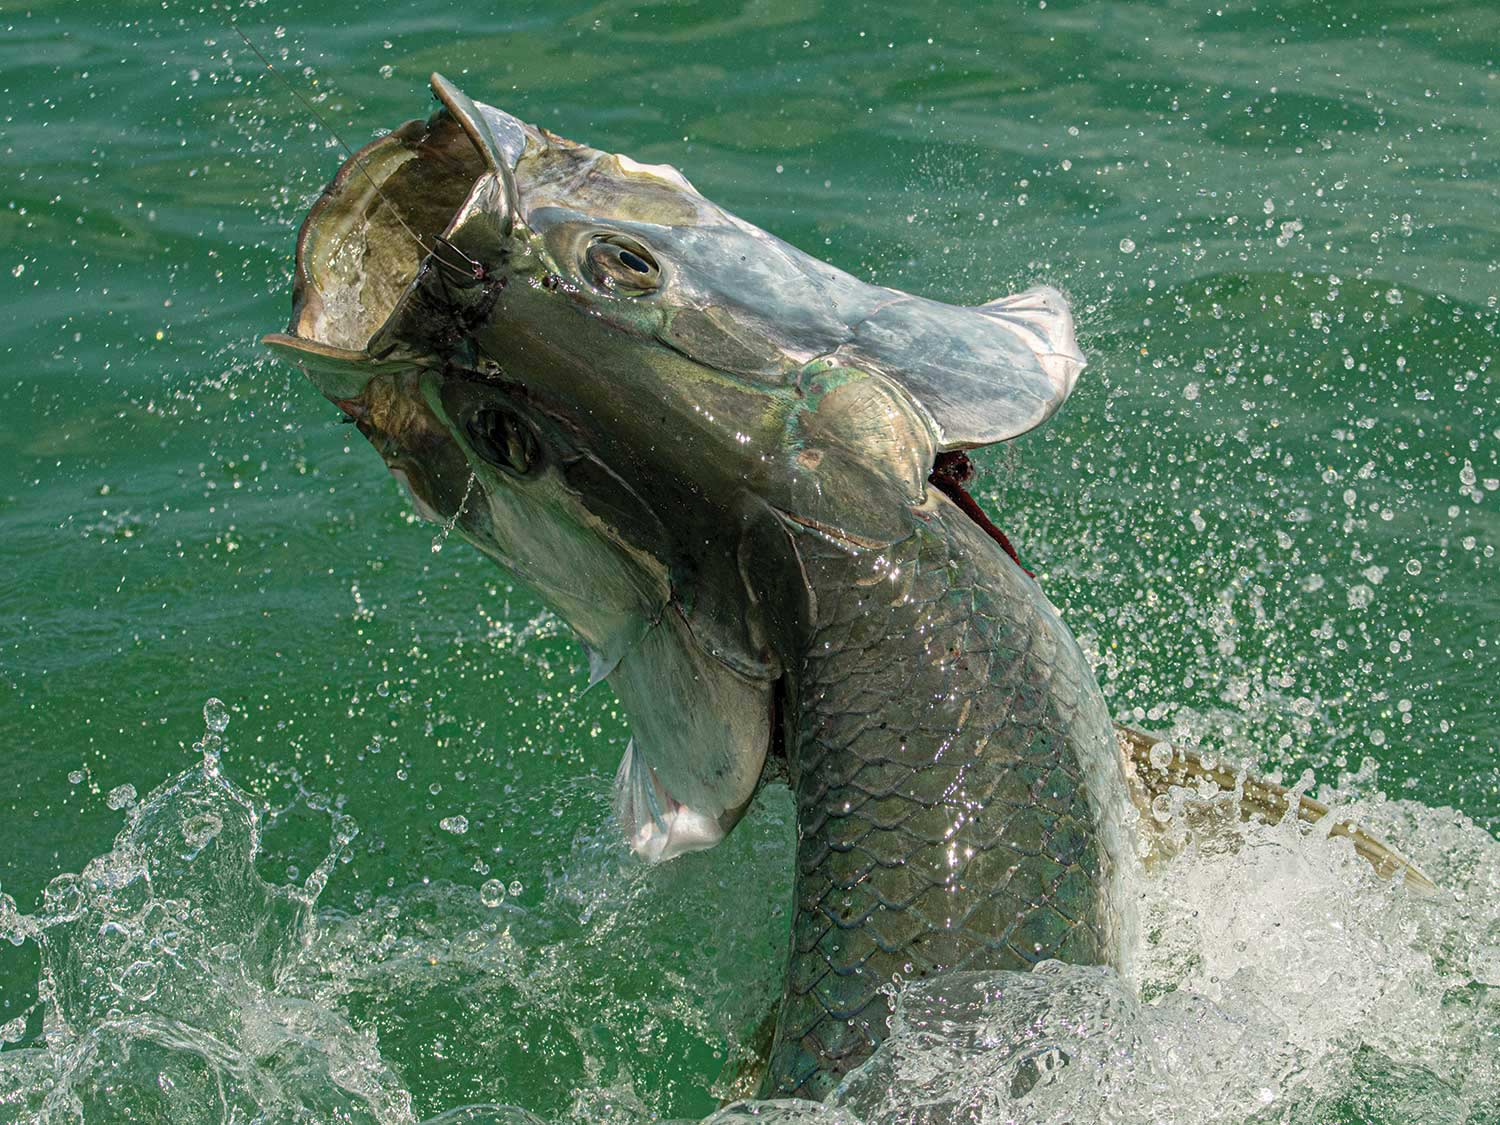 A fish breaking out of the water.